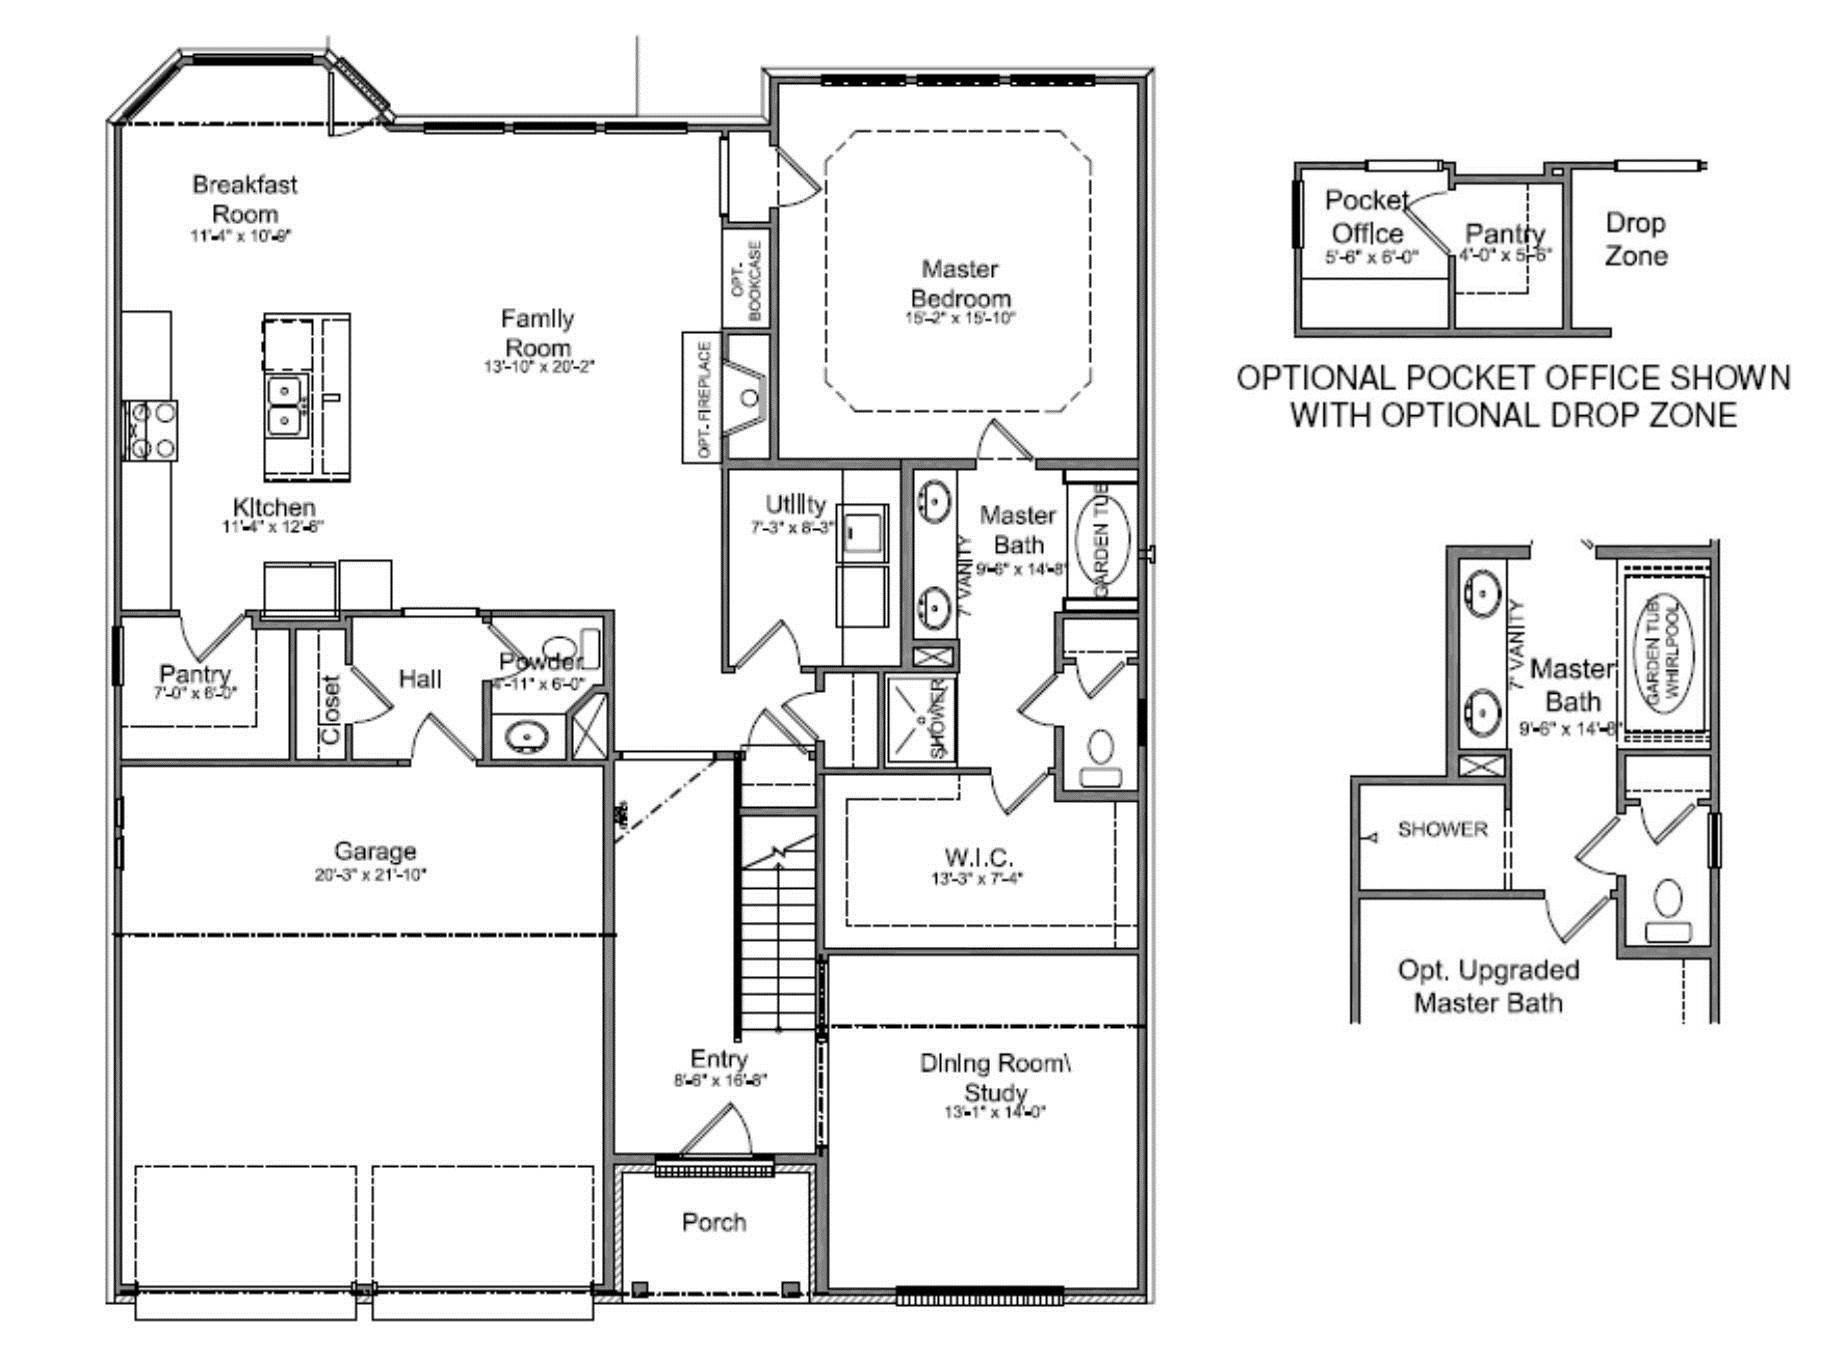 Large Walk In Closet Floor Plans Image Of Bathroom And Closet